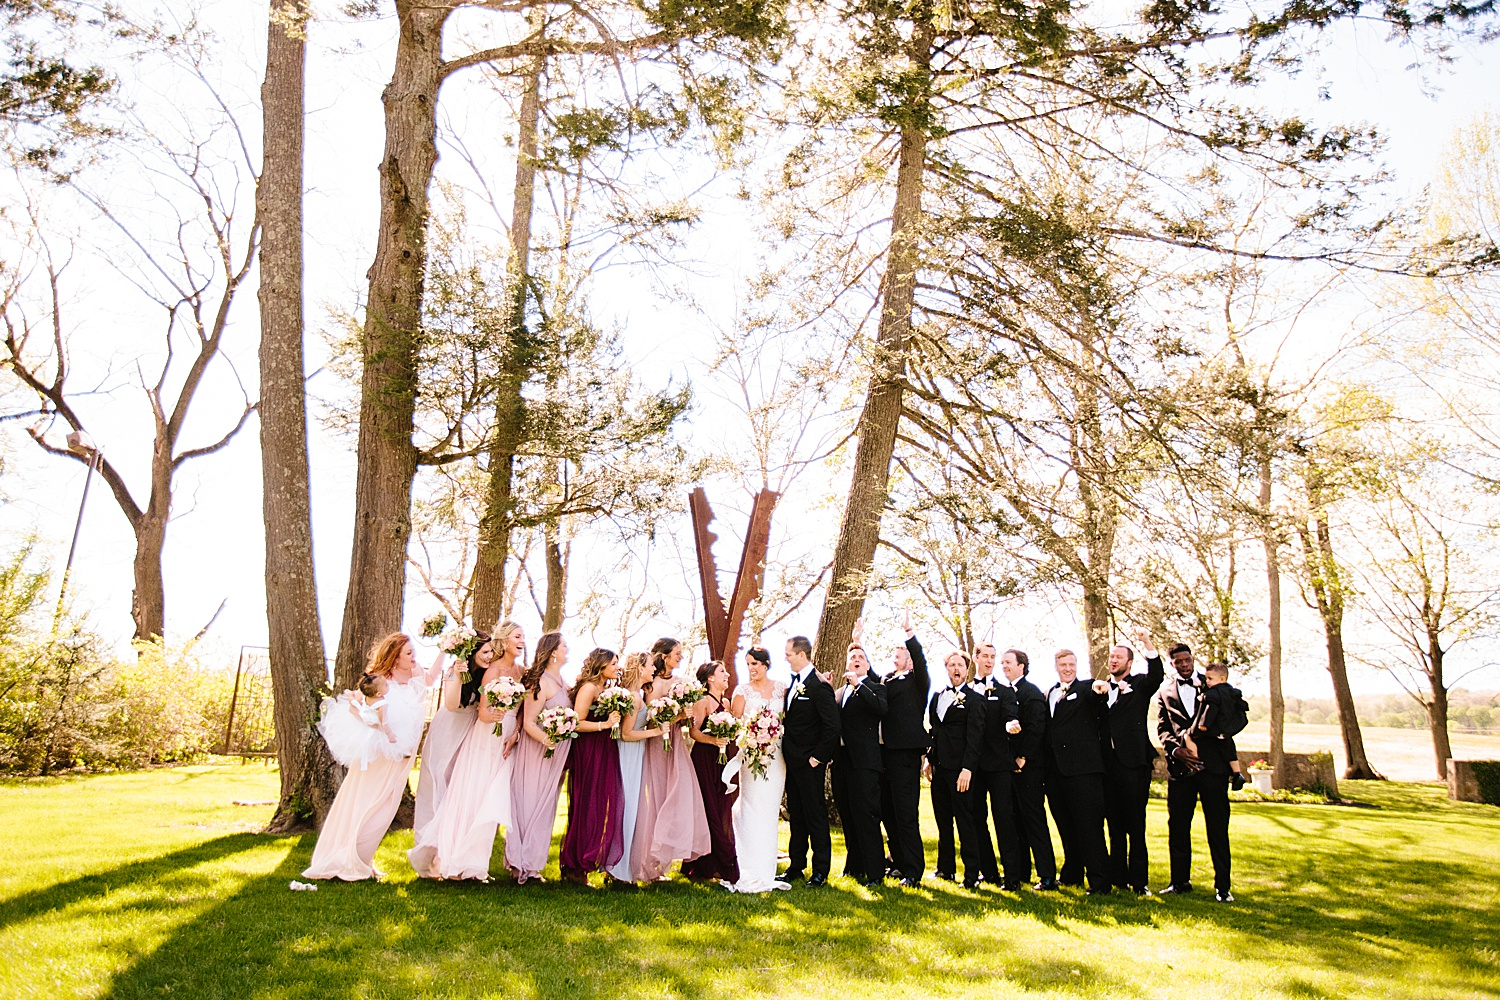 caitlingmarc_hotelduvillage_newhope_estate_spring_wedding)image044.jpg